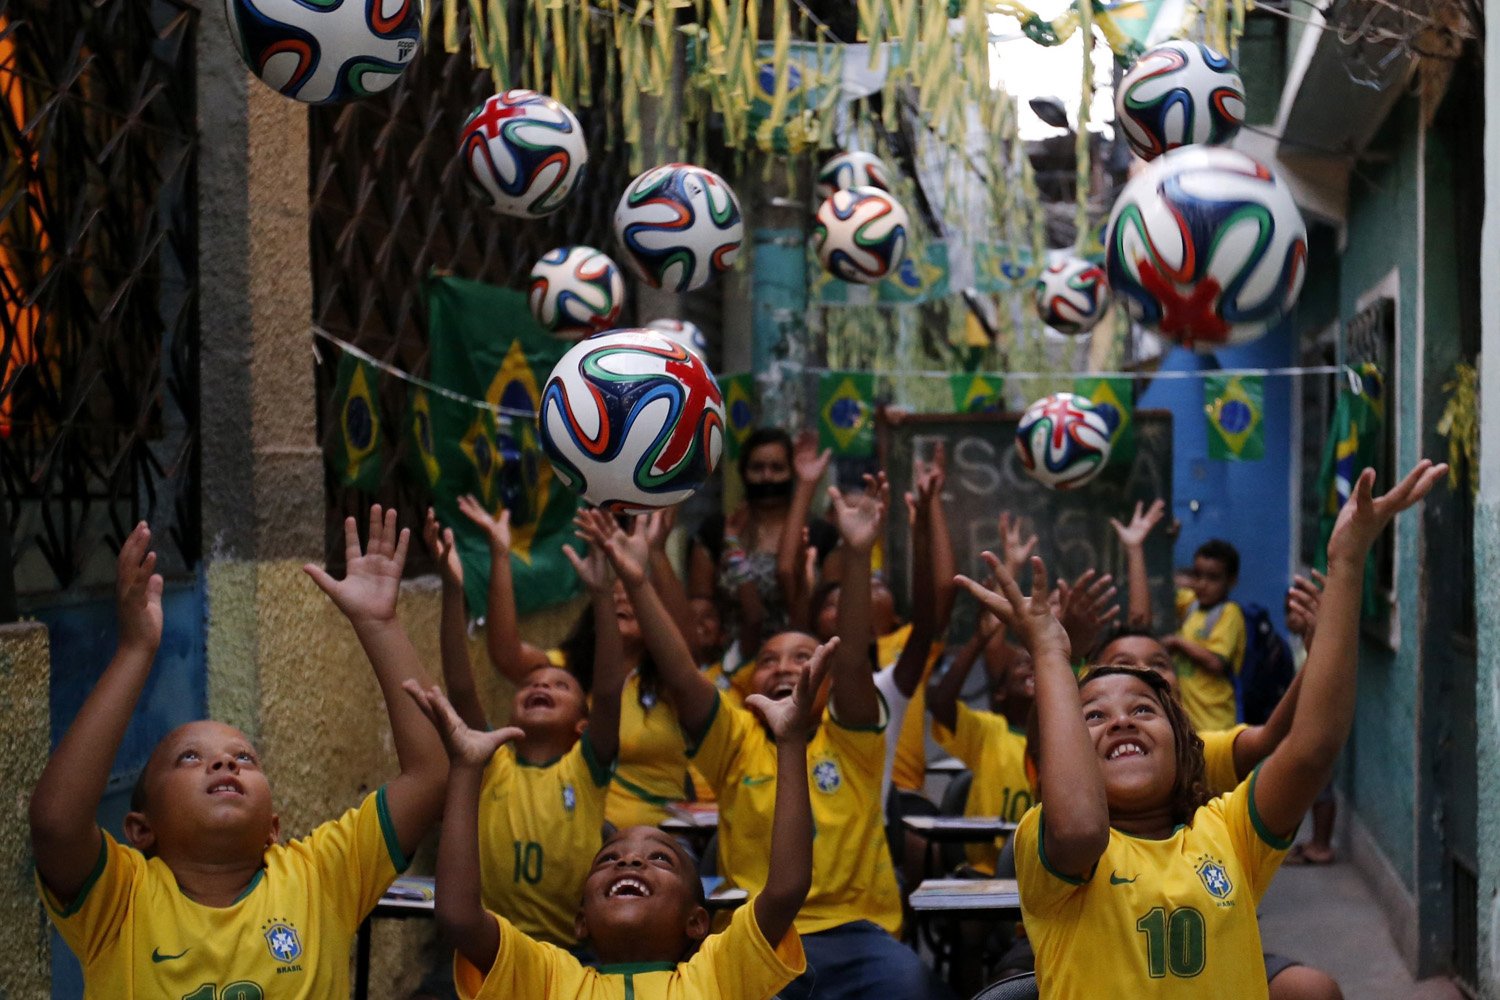 Children throw official 2014 FIFA World Cup soccer balls into the air during a protest against the 2014 World Cup, organized by the NGO Rio de Paz at the Jacarezinho slum in Rio de Janeiro on May 14, 2014.